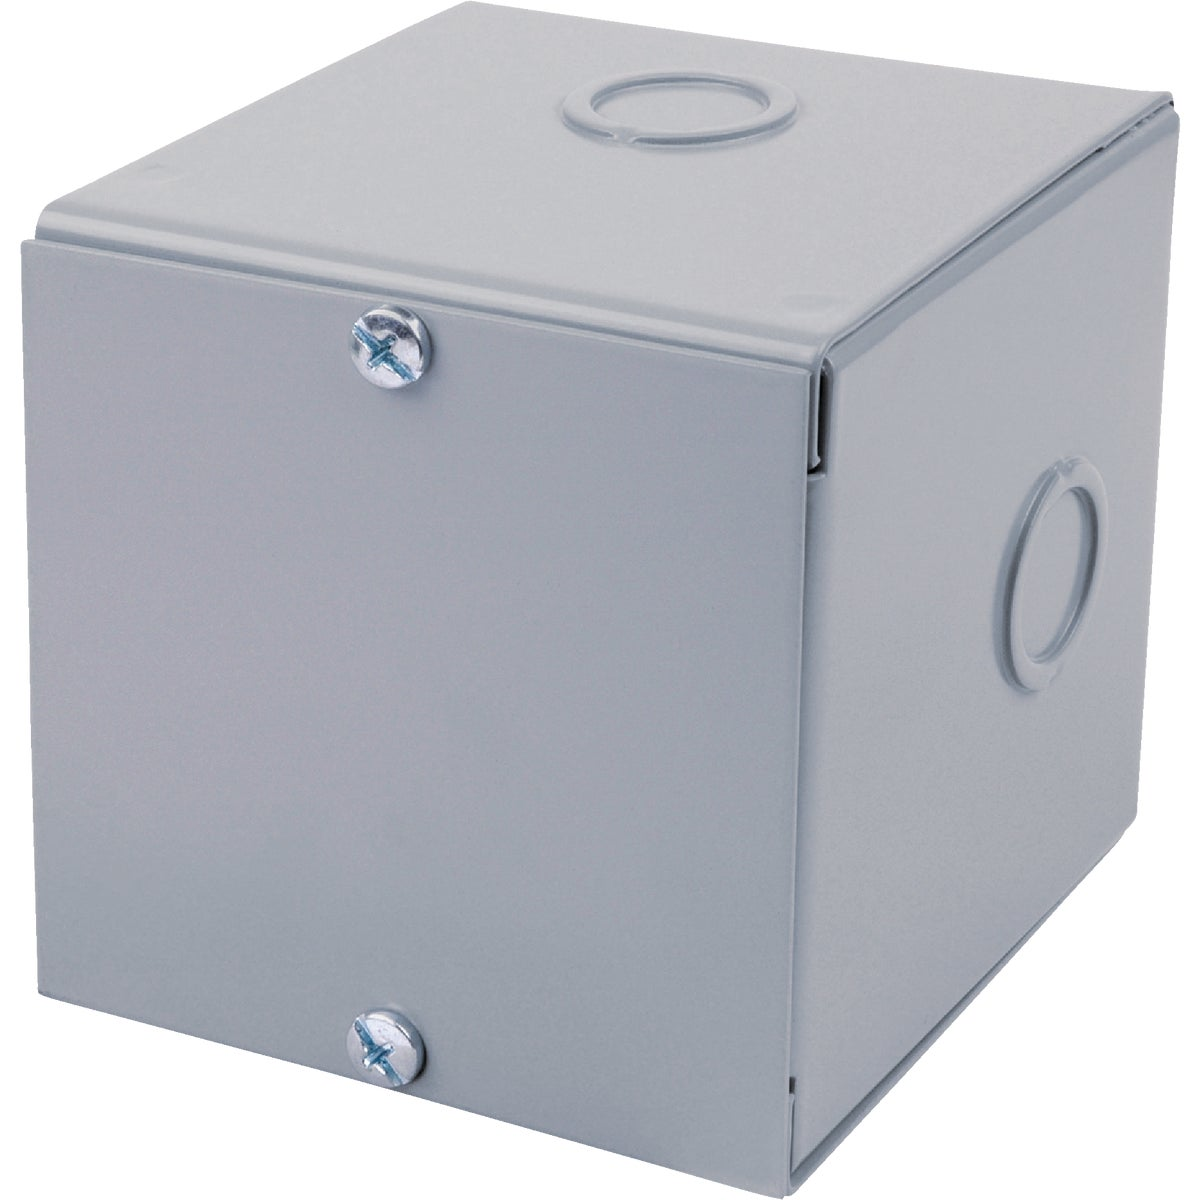 8X8X4 ENCLOSURE - AB-884SBGK001 by Thomas & Betts